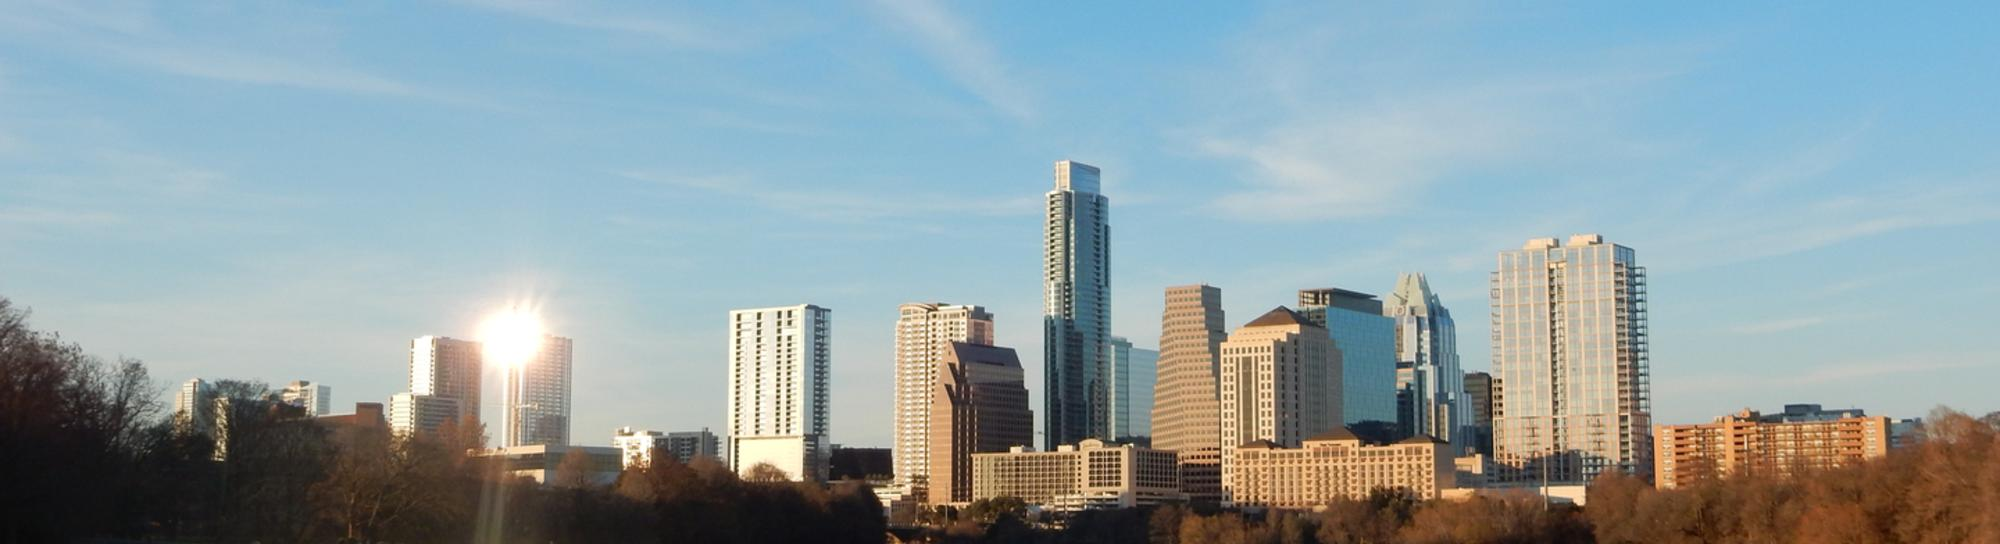 Austin TX Skyline Commercial Real Estate